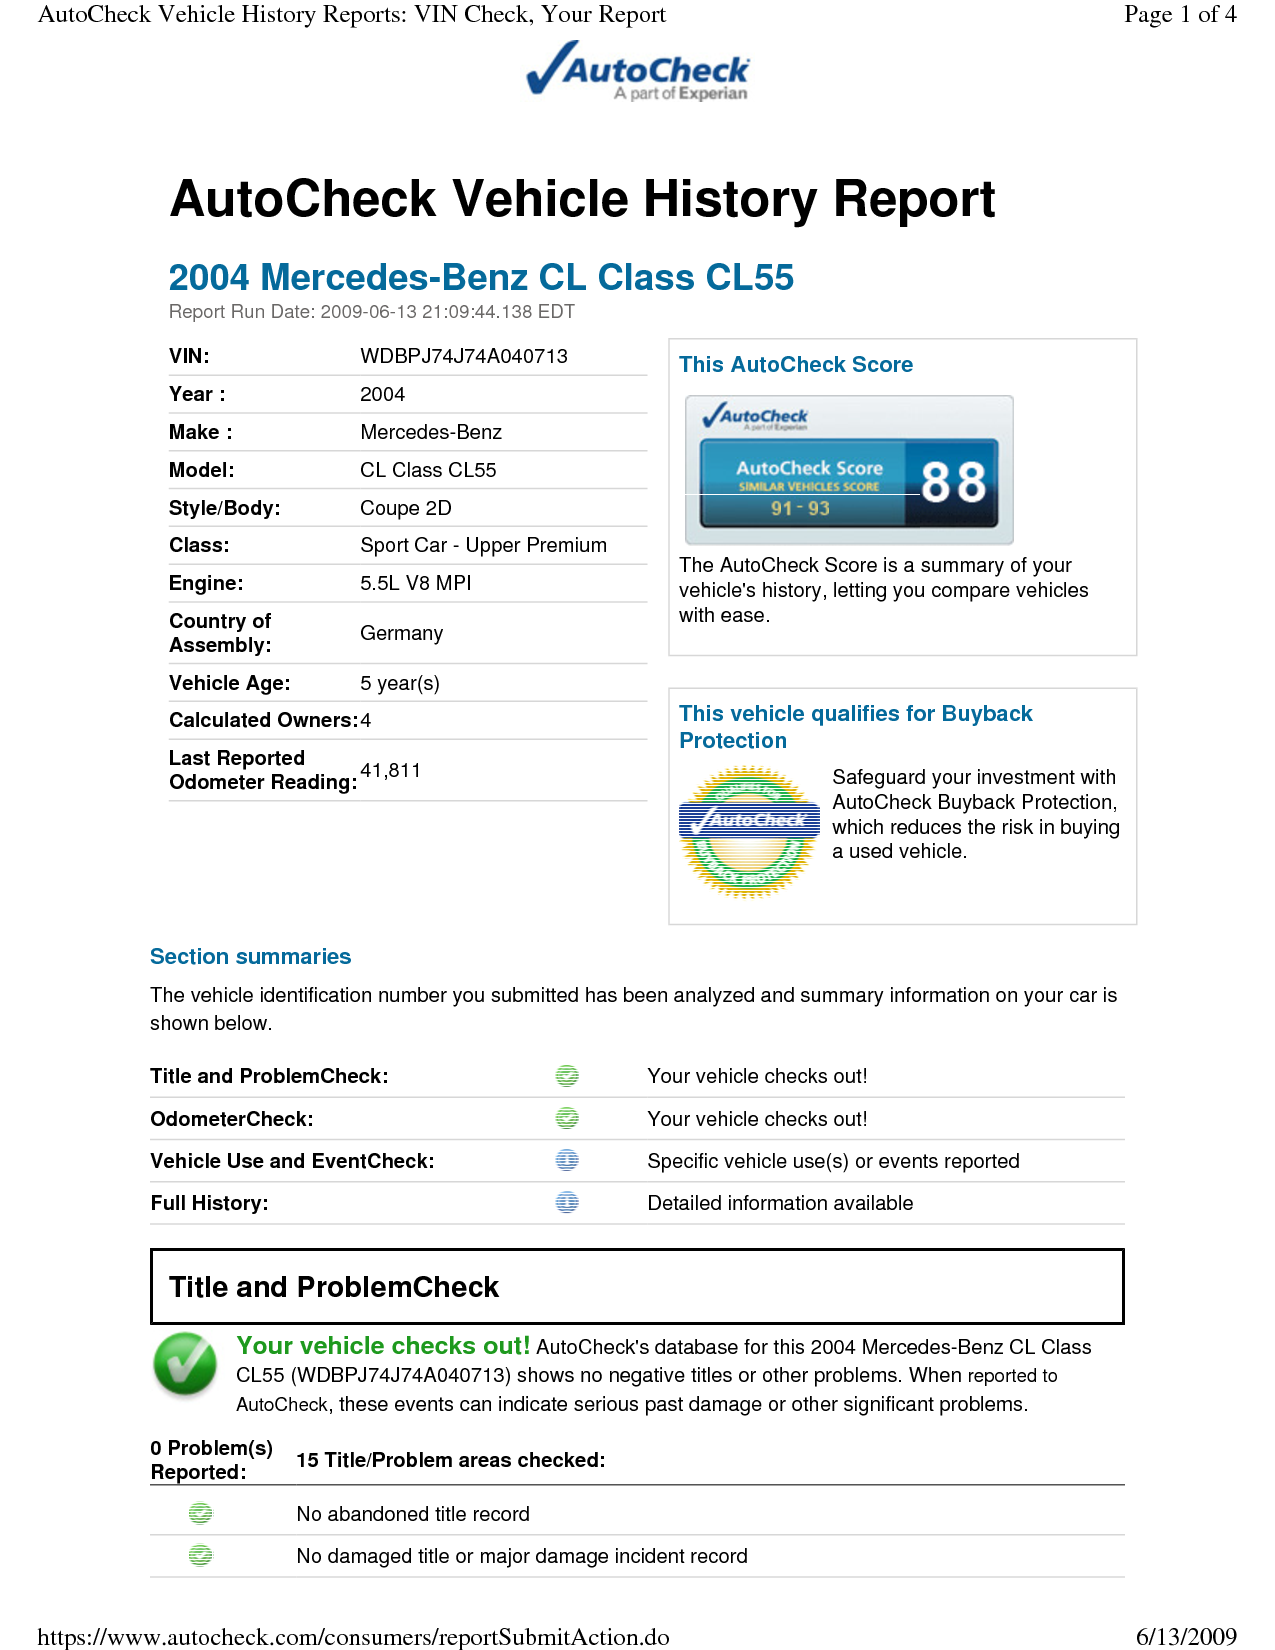 Lovely Carfax Vin Number Check